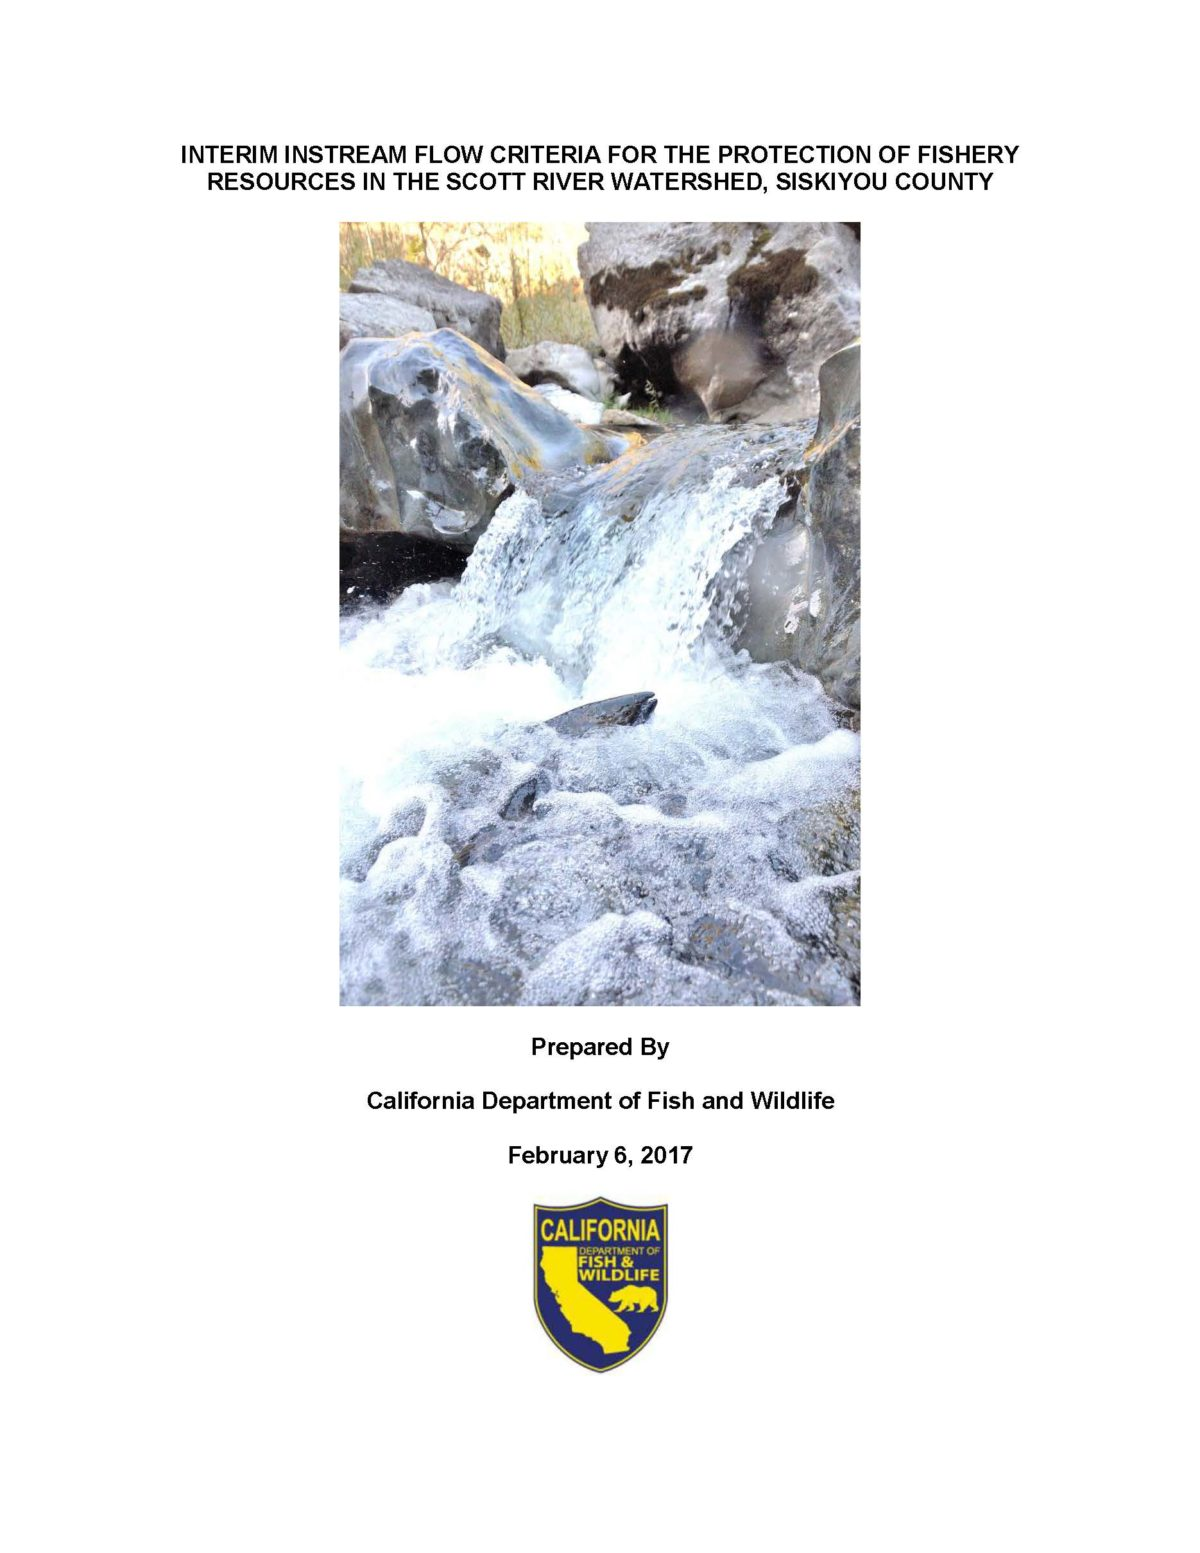 Interim instream flow criteria for the protection of fishery resources in the Scott River watershed, Siskiyou County